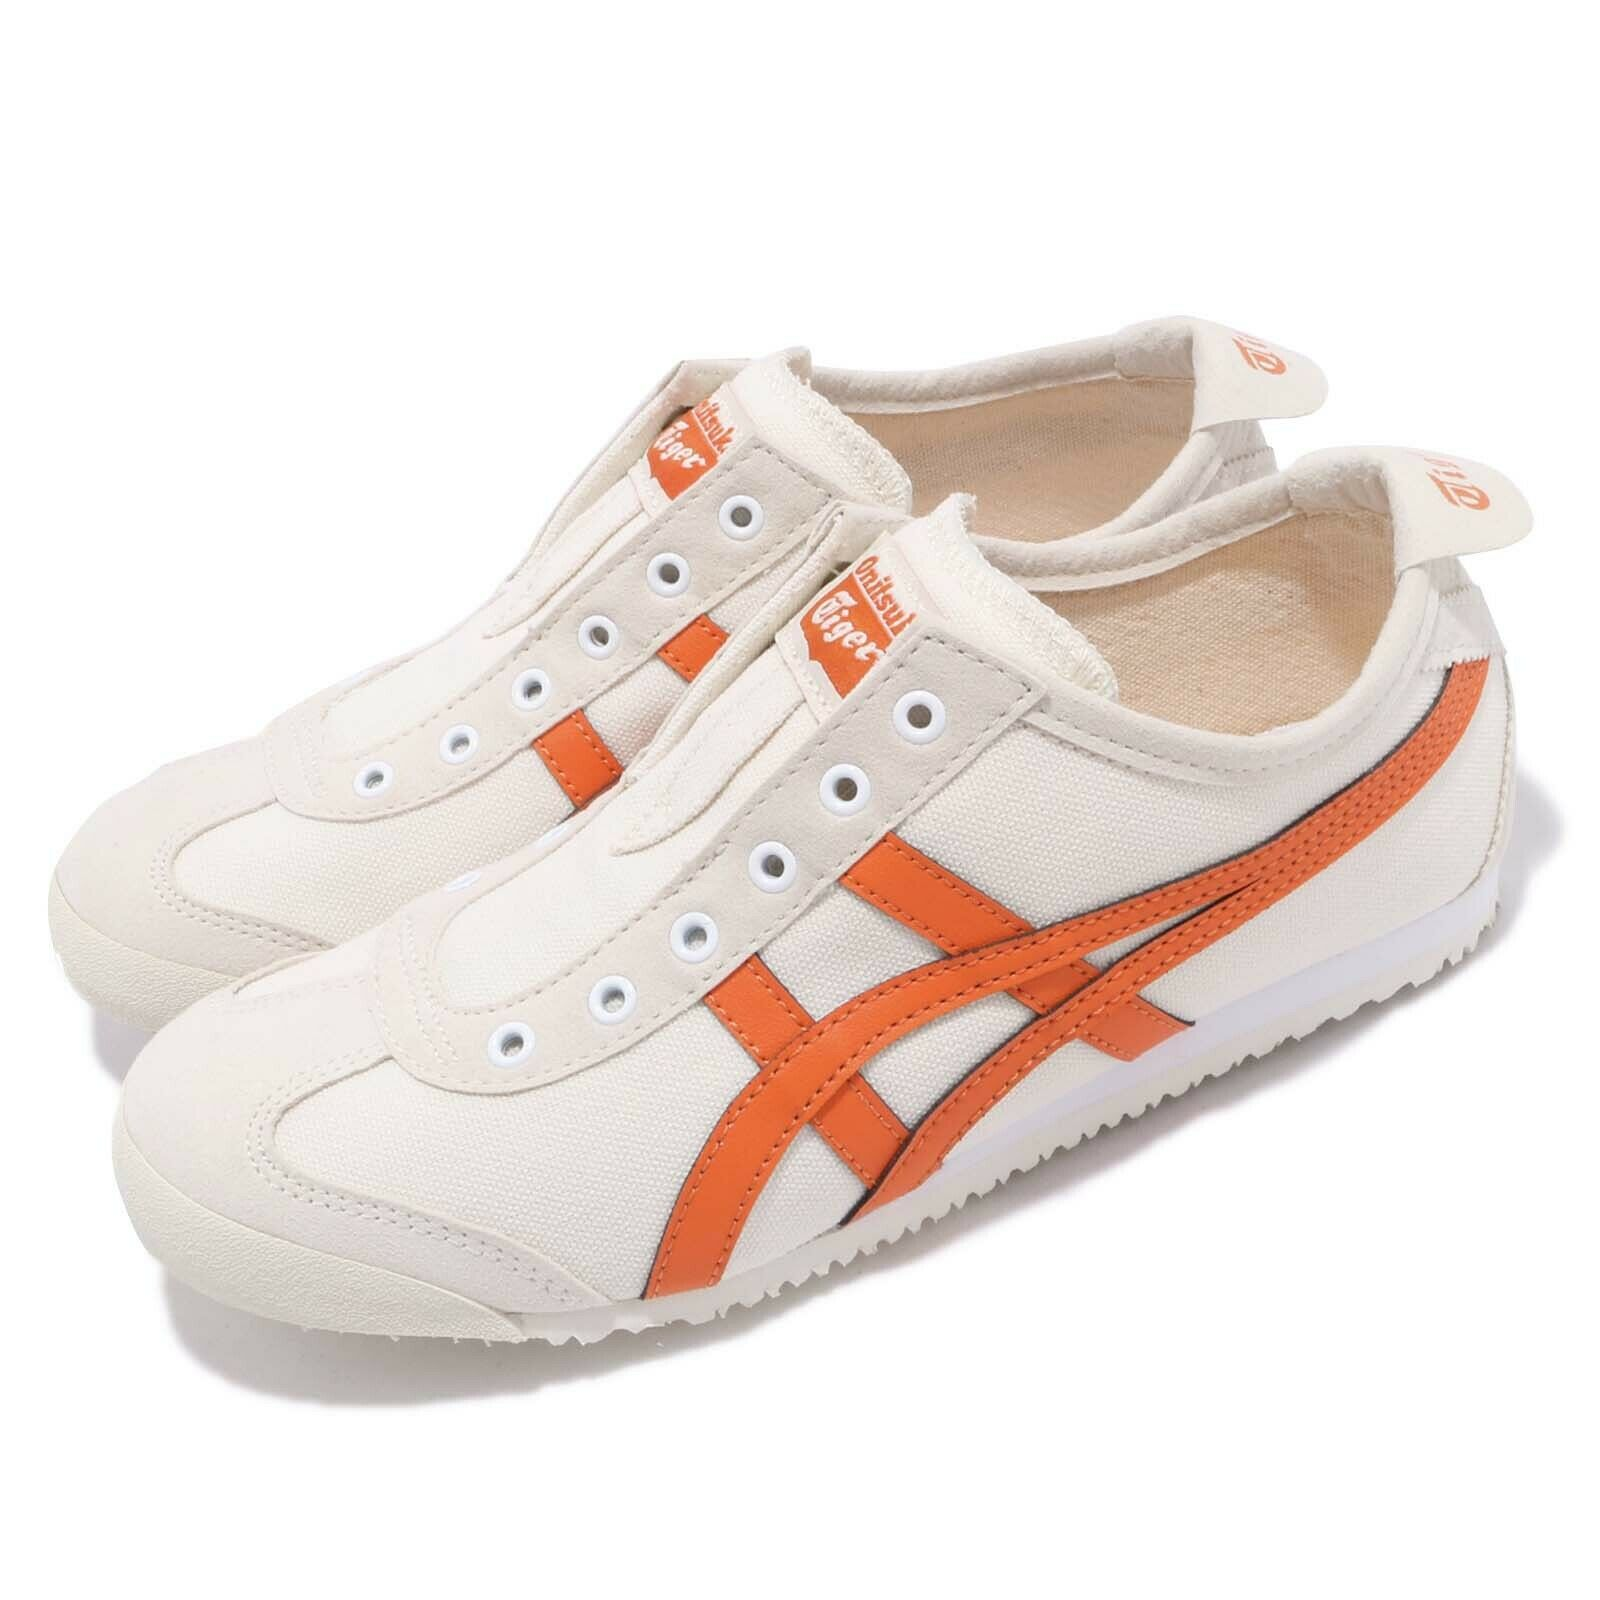 Asics Onithuka Tiger Mexico 66 Slip On Birch orange Men Women shoes 1183A360-202